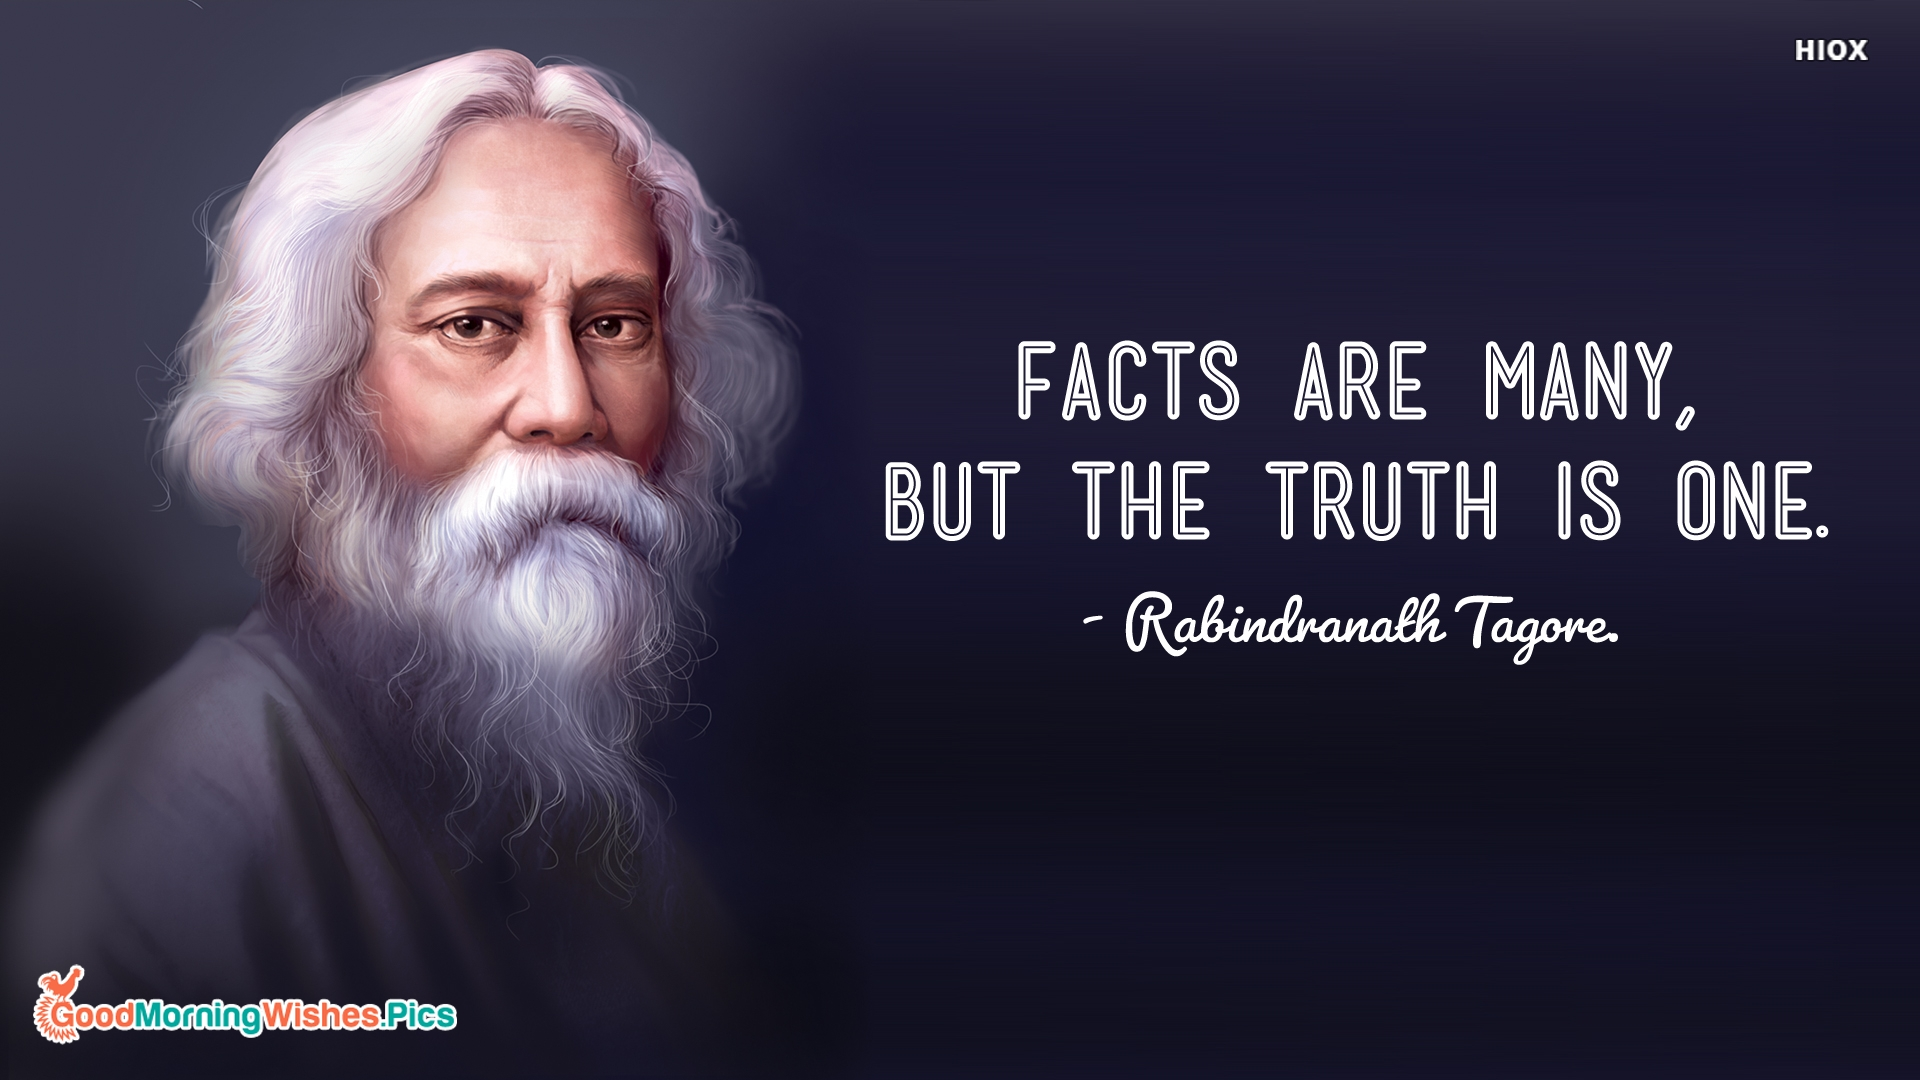 Facts Are Many, But The Truth is One. - Rabindranath Tagore.